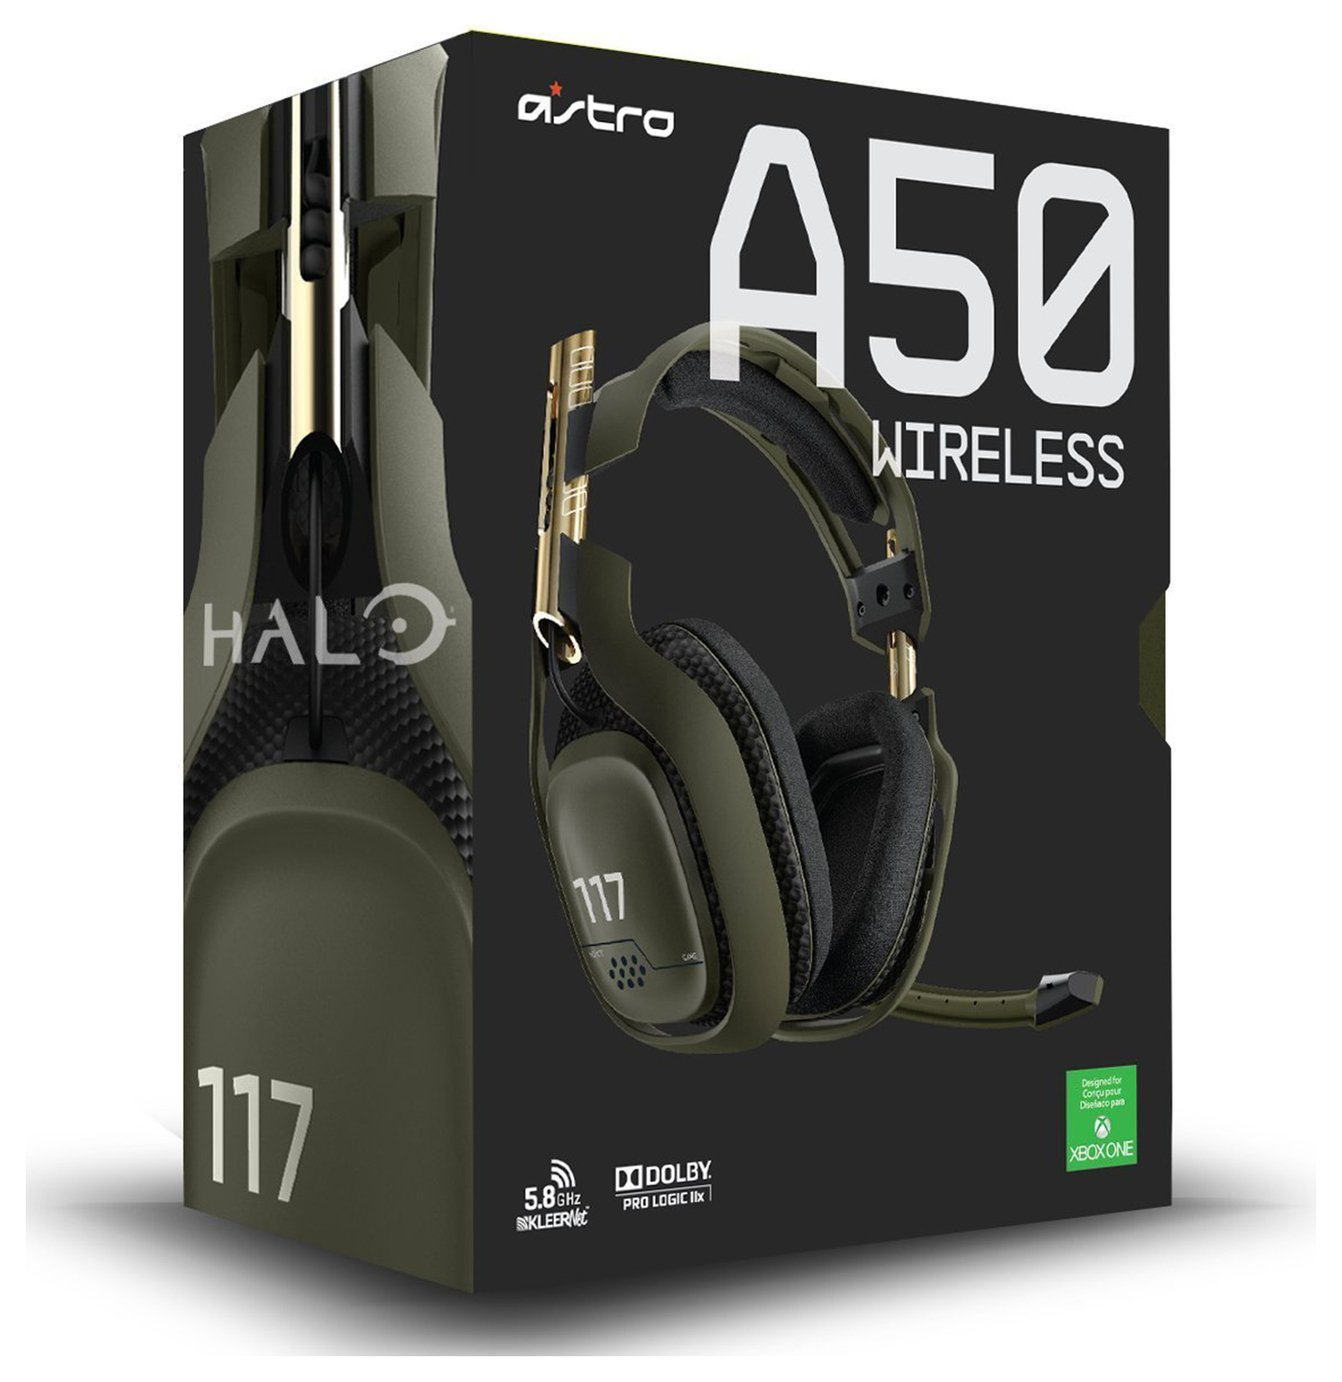 Image of Astro A50 Wireless Audio System Halo Edition for Xbox One.